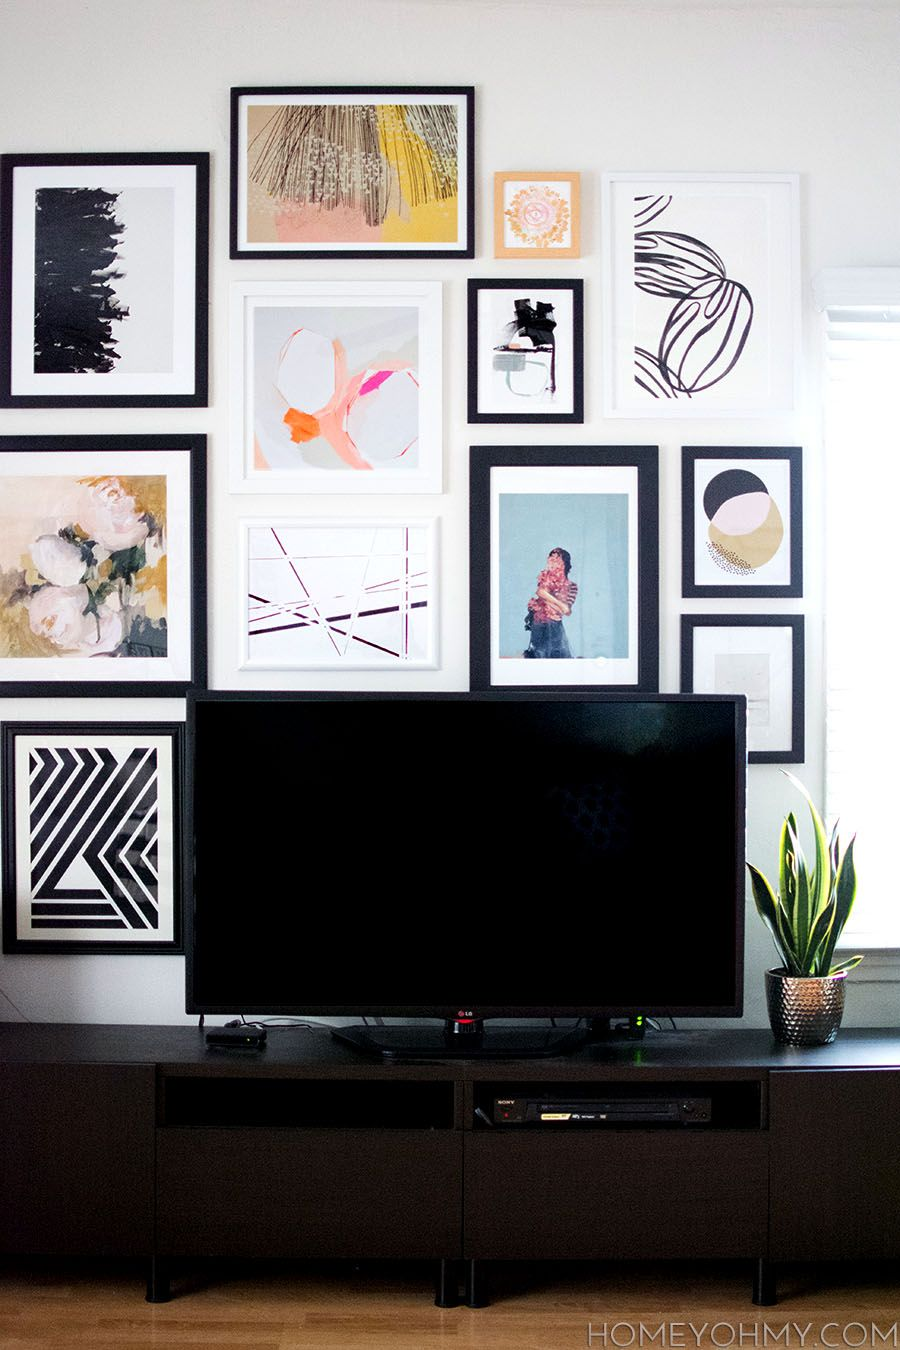 How to plan and hang a gallery wall gallery wall walls and galleries